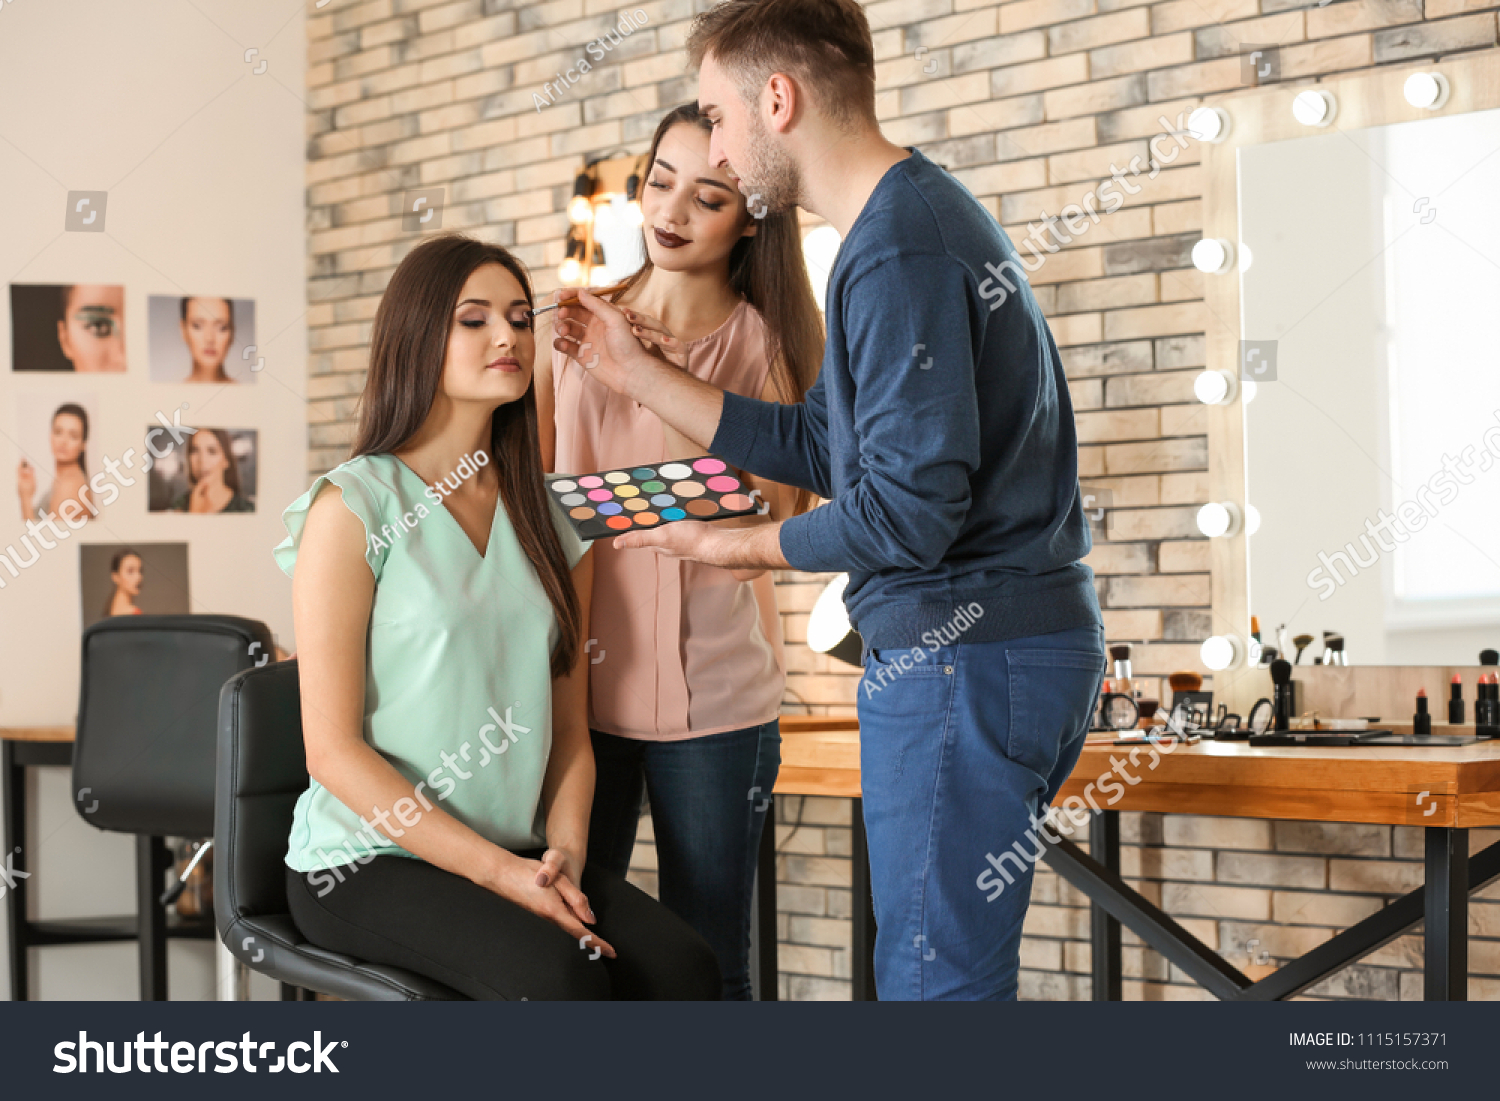 Professional makeup artist teaching trainee in salon. Apprenticeship concept